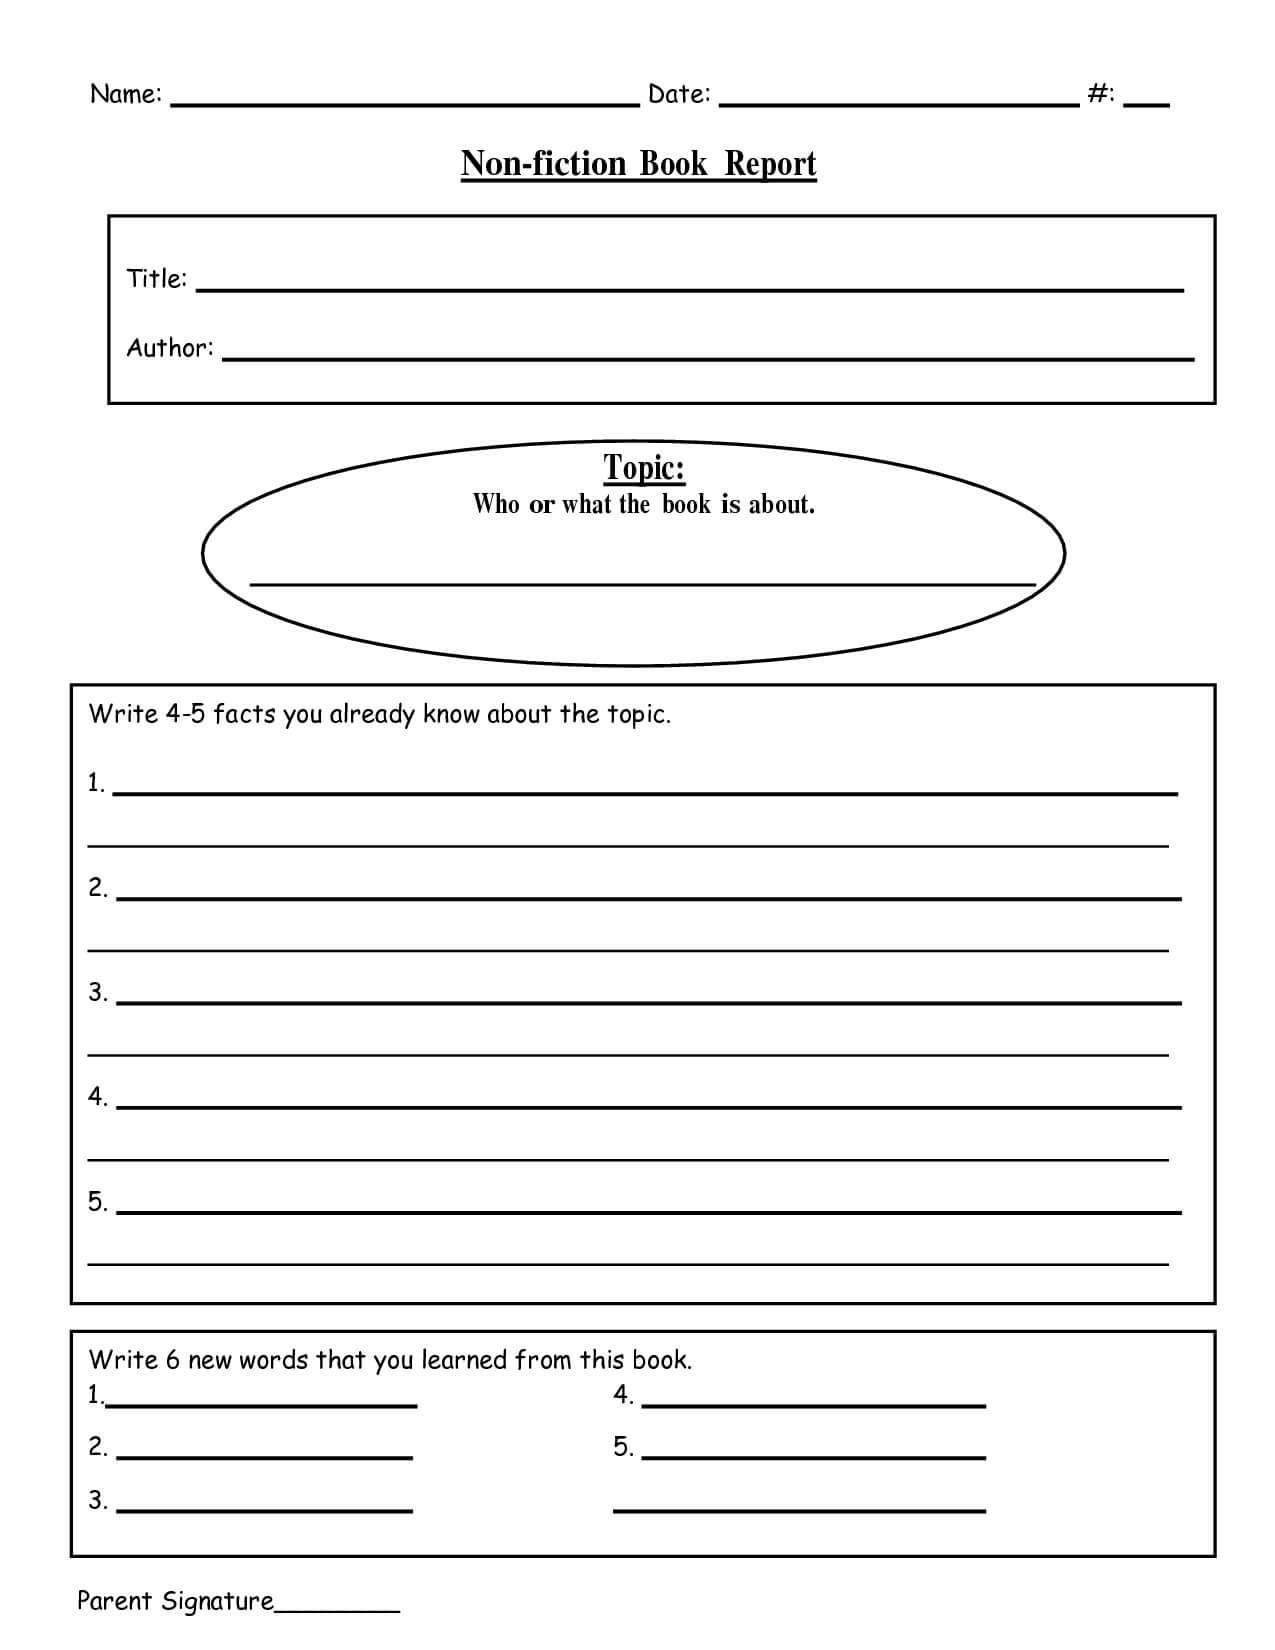 Free Printable Book Report Templates | Non Fiction Book With Nonfiction Book Report Template